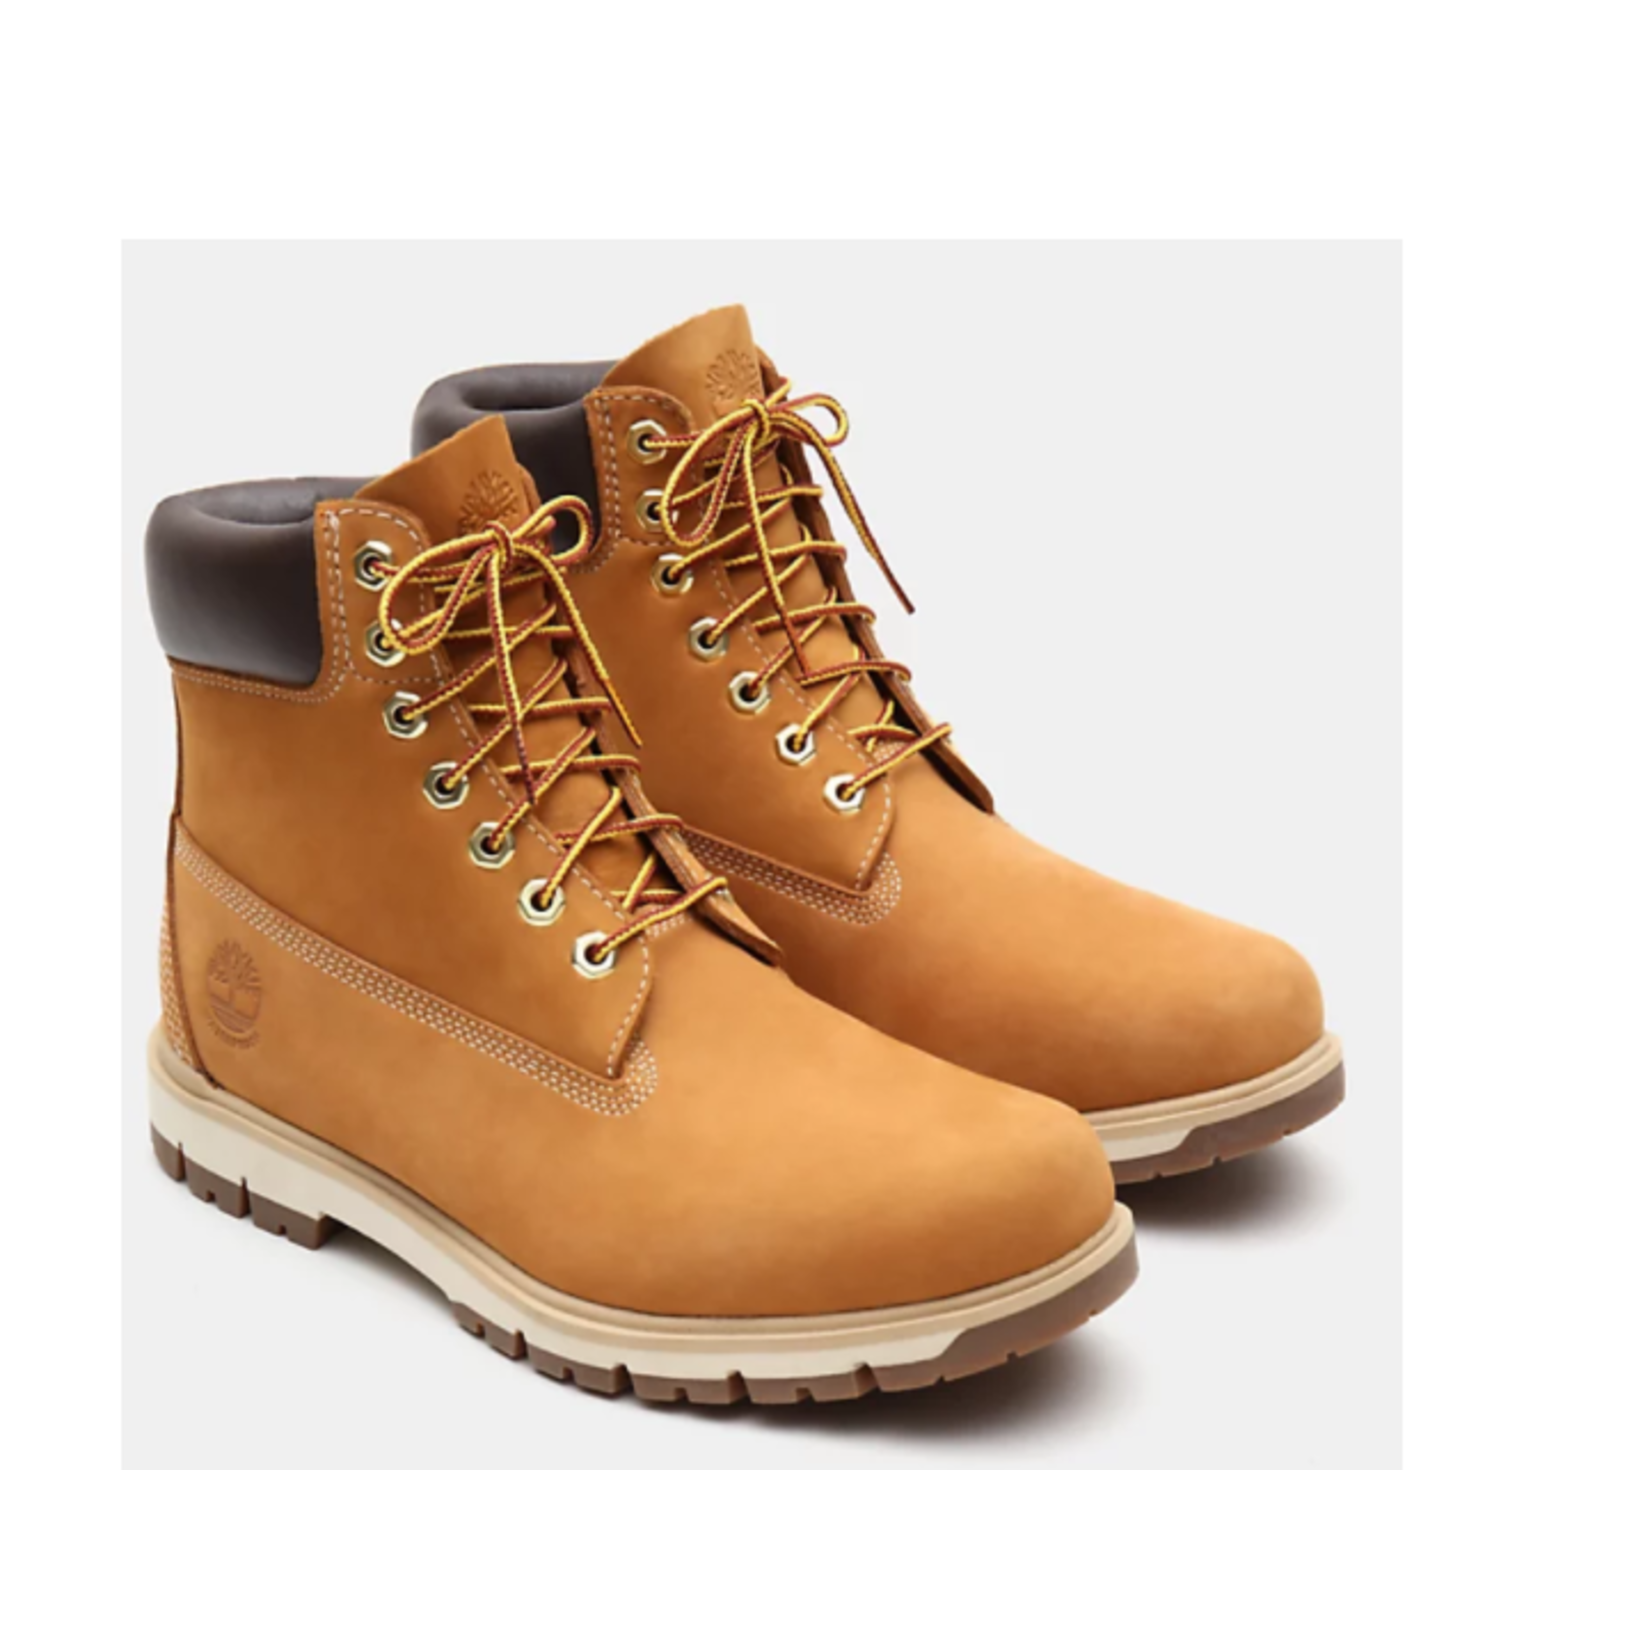 Timberland RADFORD 6 INCH BOOT FOR MEN IN YELLOW